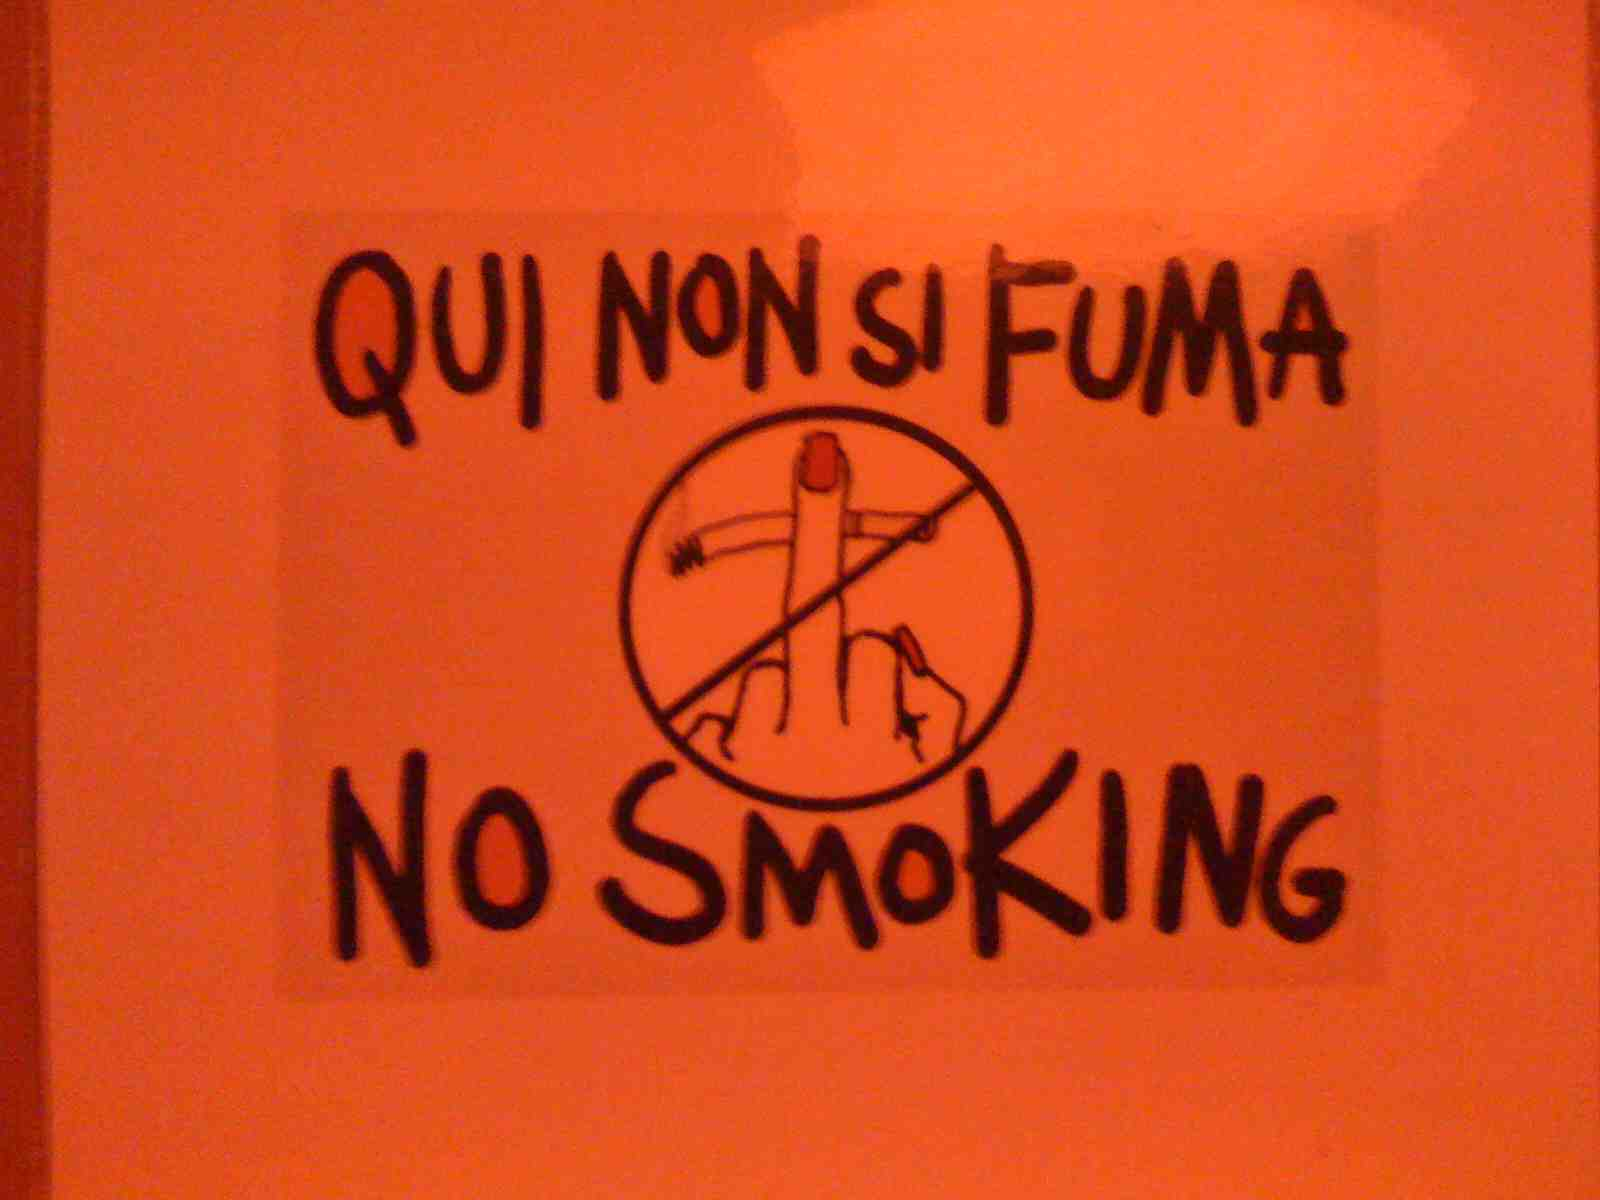 NYC- Scuderia - No Smoking